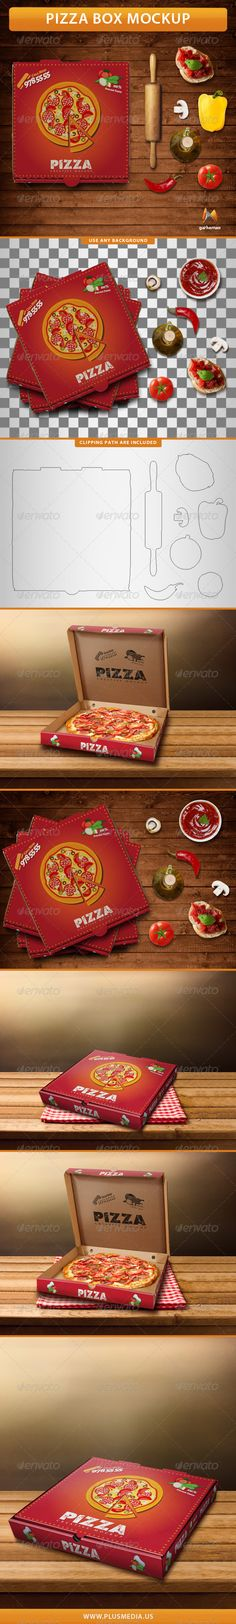 Pizza Box Mockup — Photoshop PSD #corrugated #mockup • Available here → https://graphicriver.net/item/pizza-box-mockup/7733962?ref=pxcr